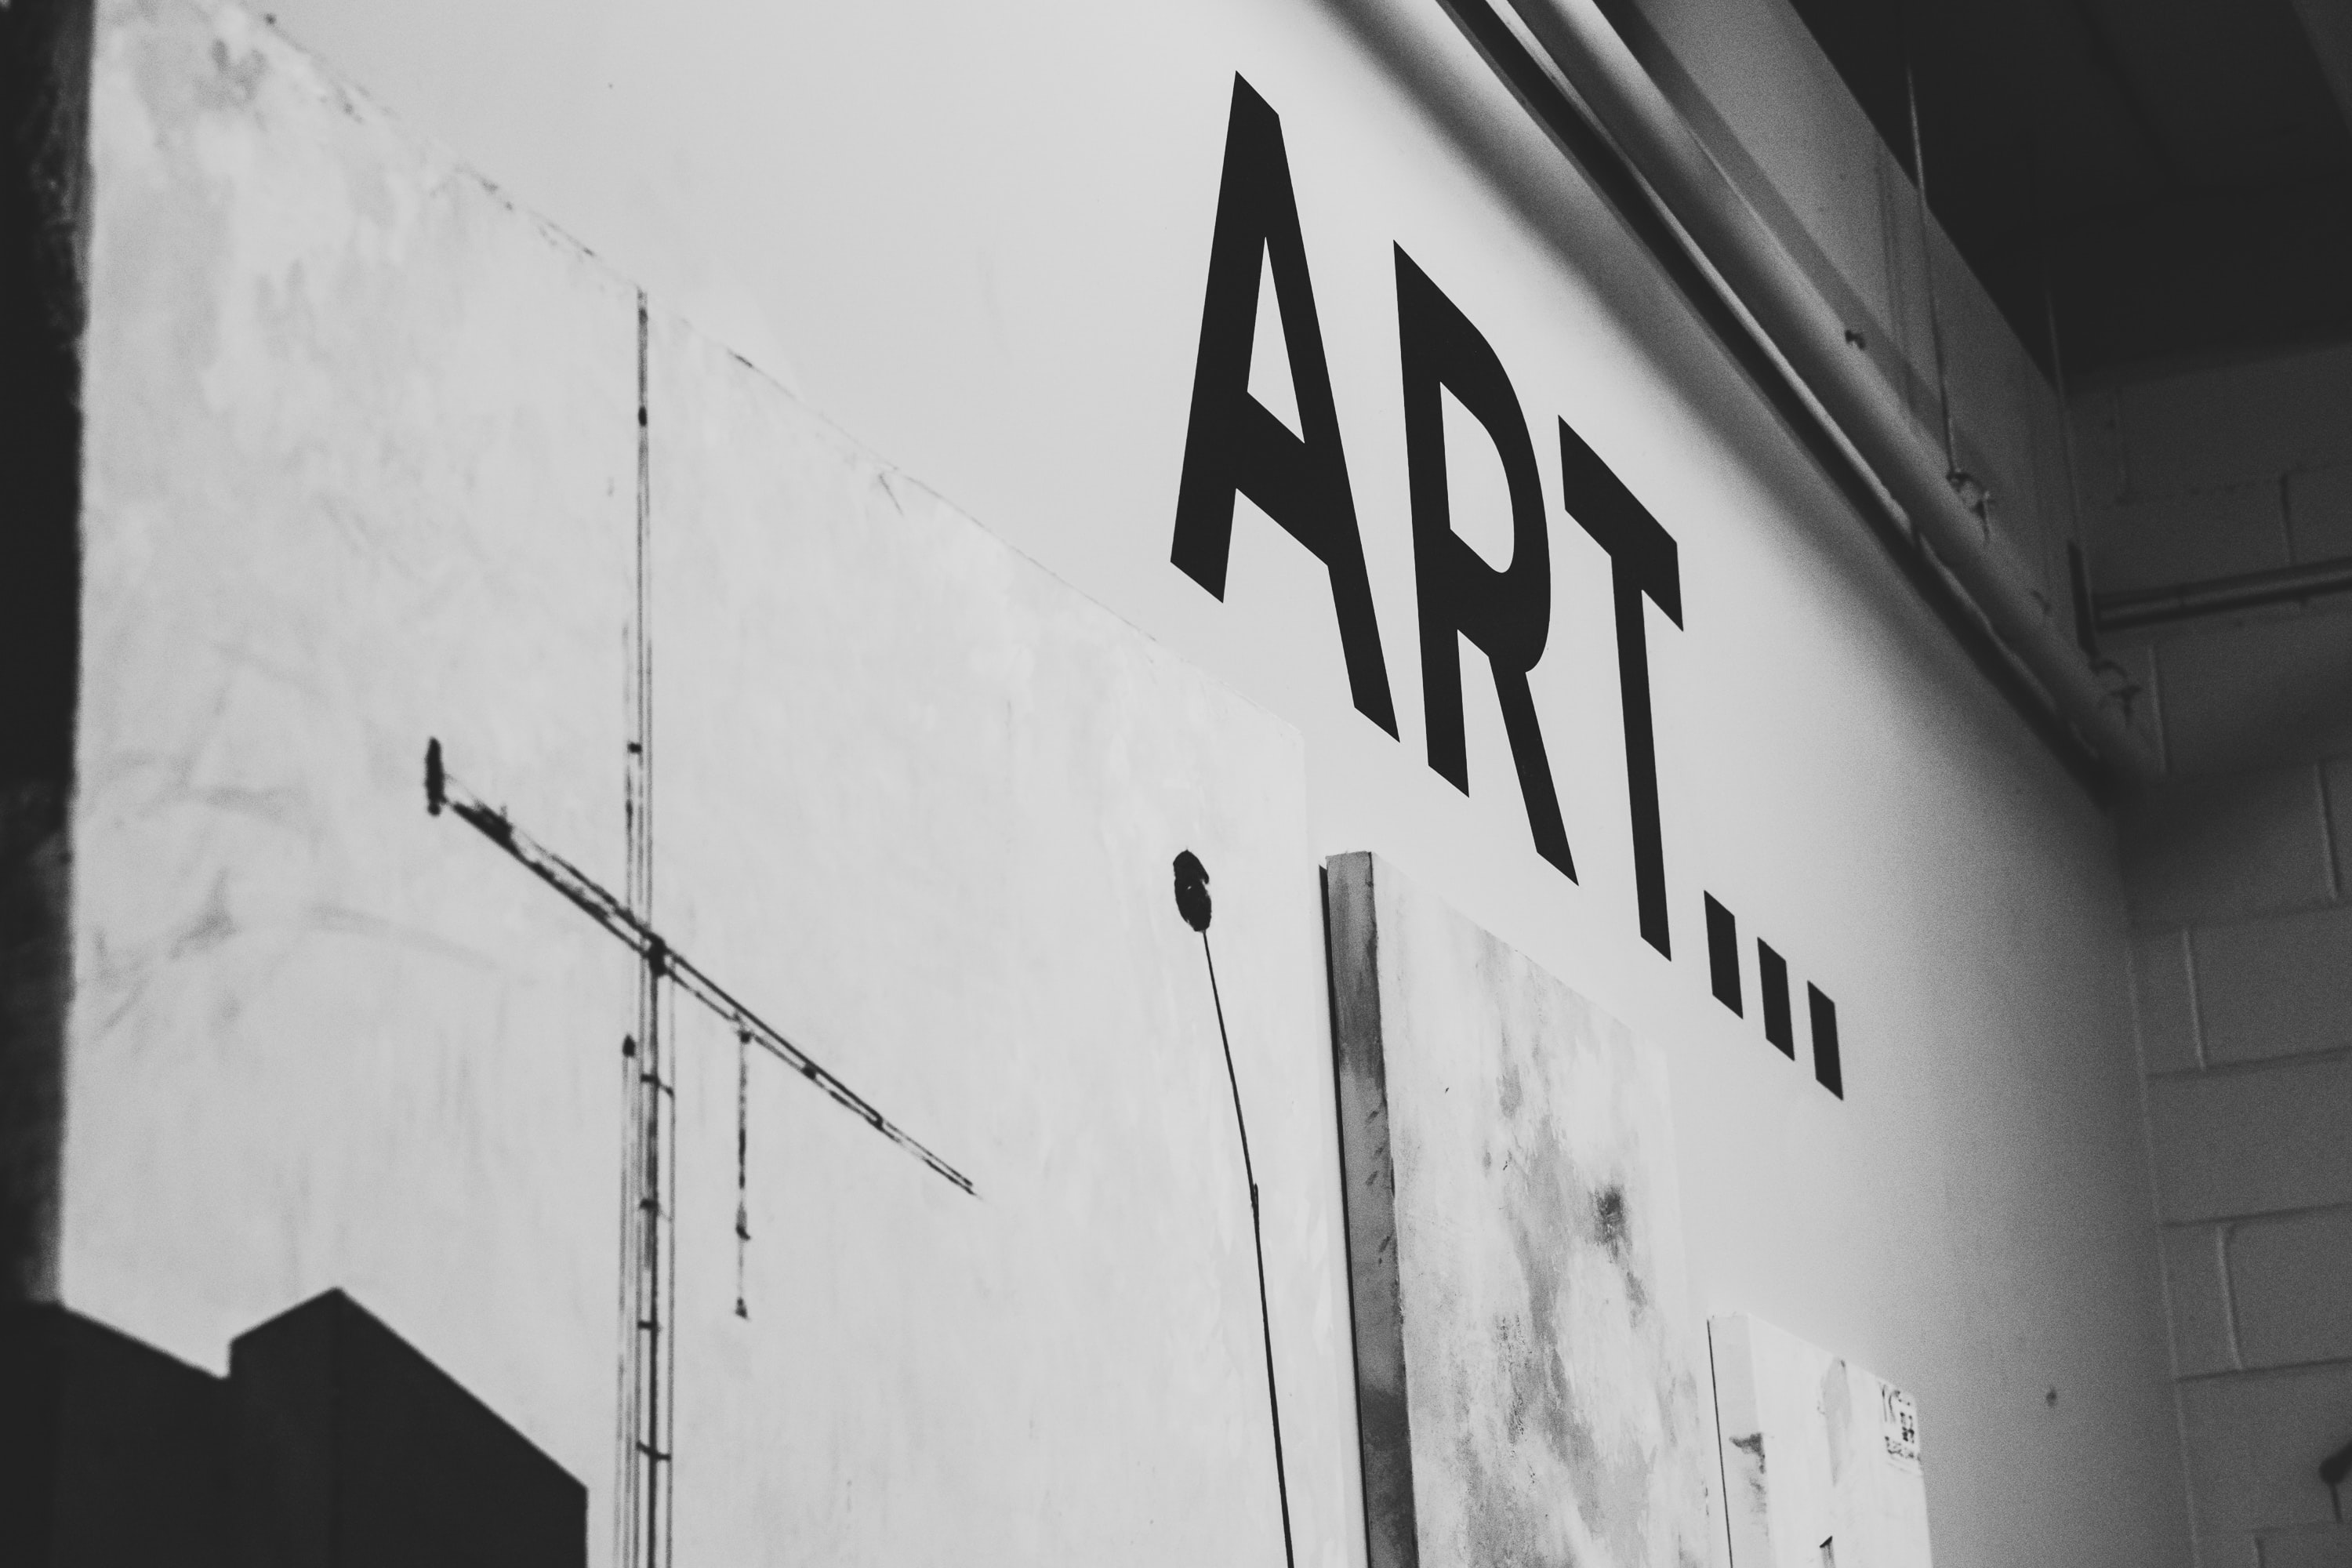 art text on wall